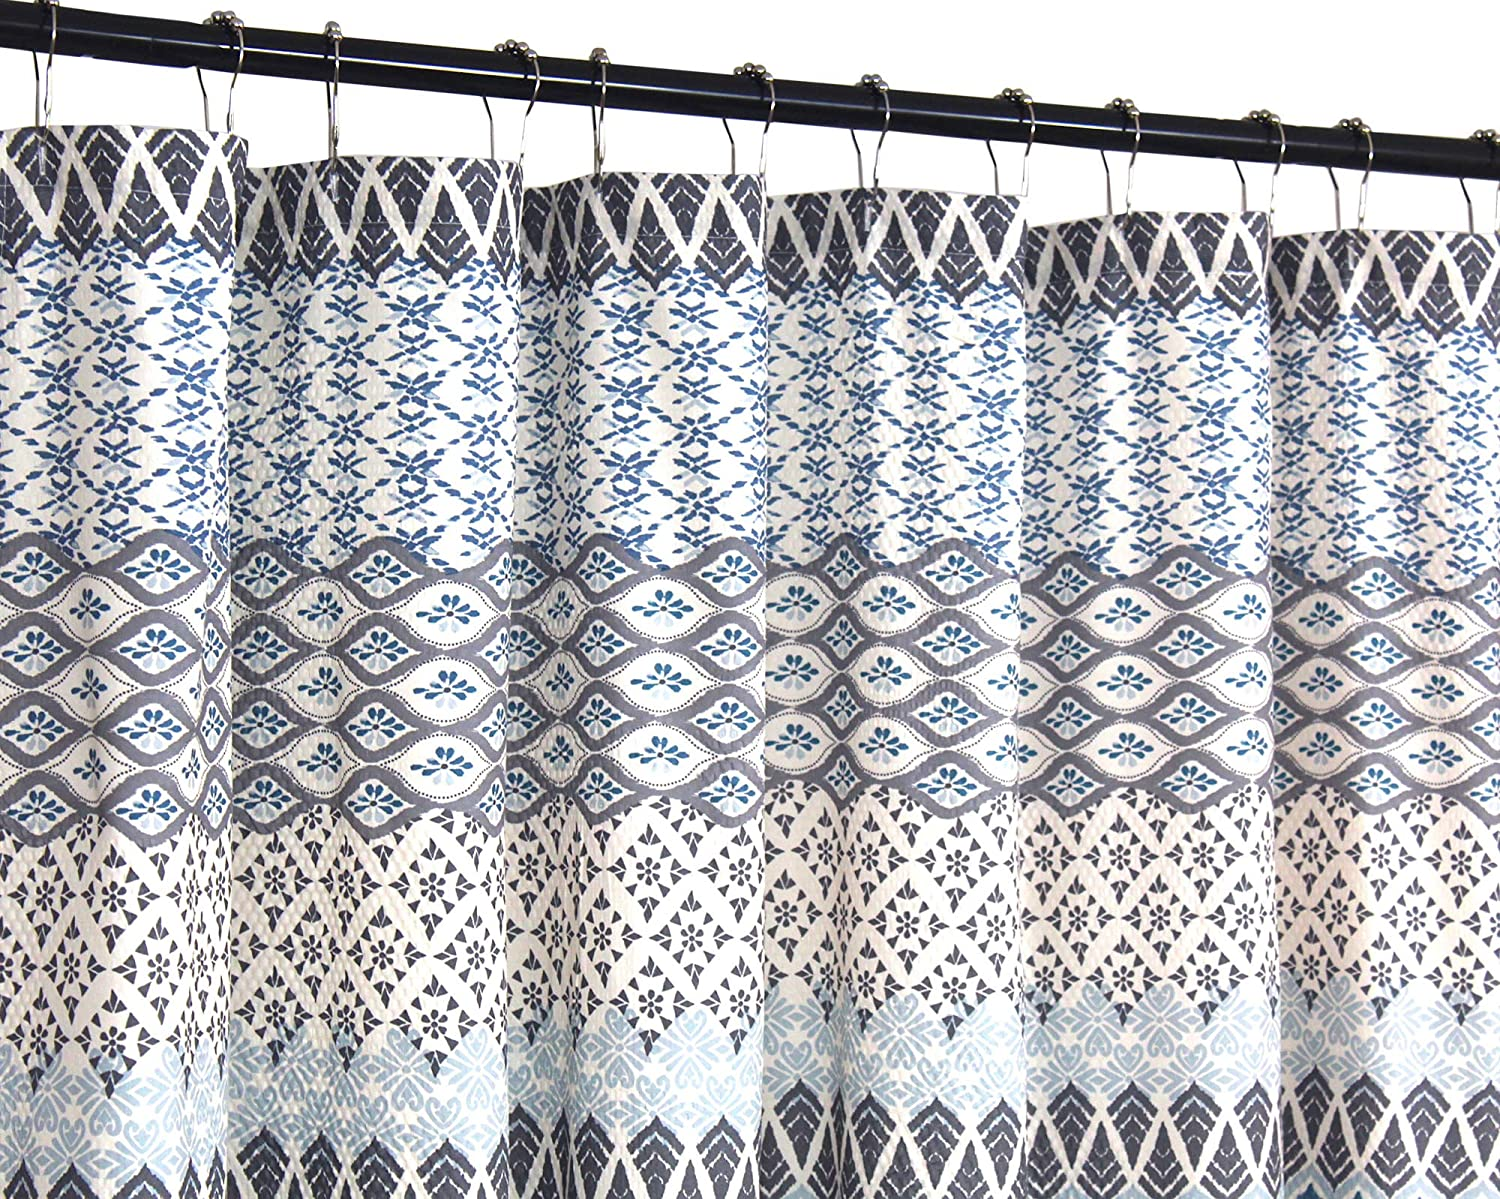 VCNY Home Teal Blue Gray Beige Fabric Shower Curtain: Floral Geometric Patterned Design